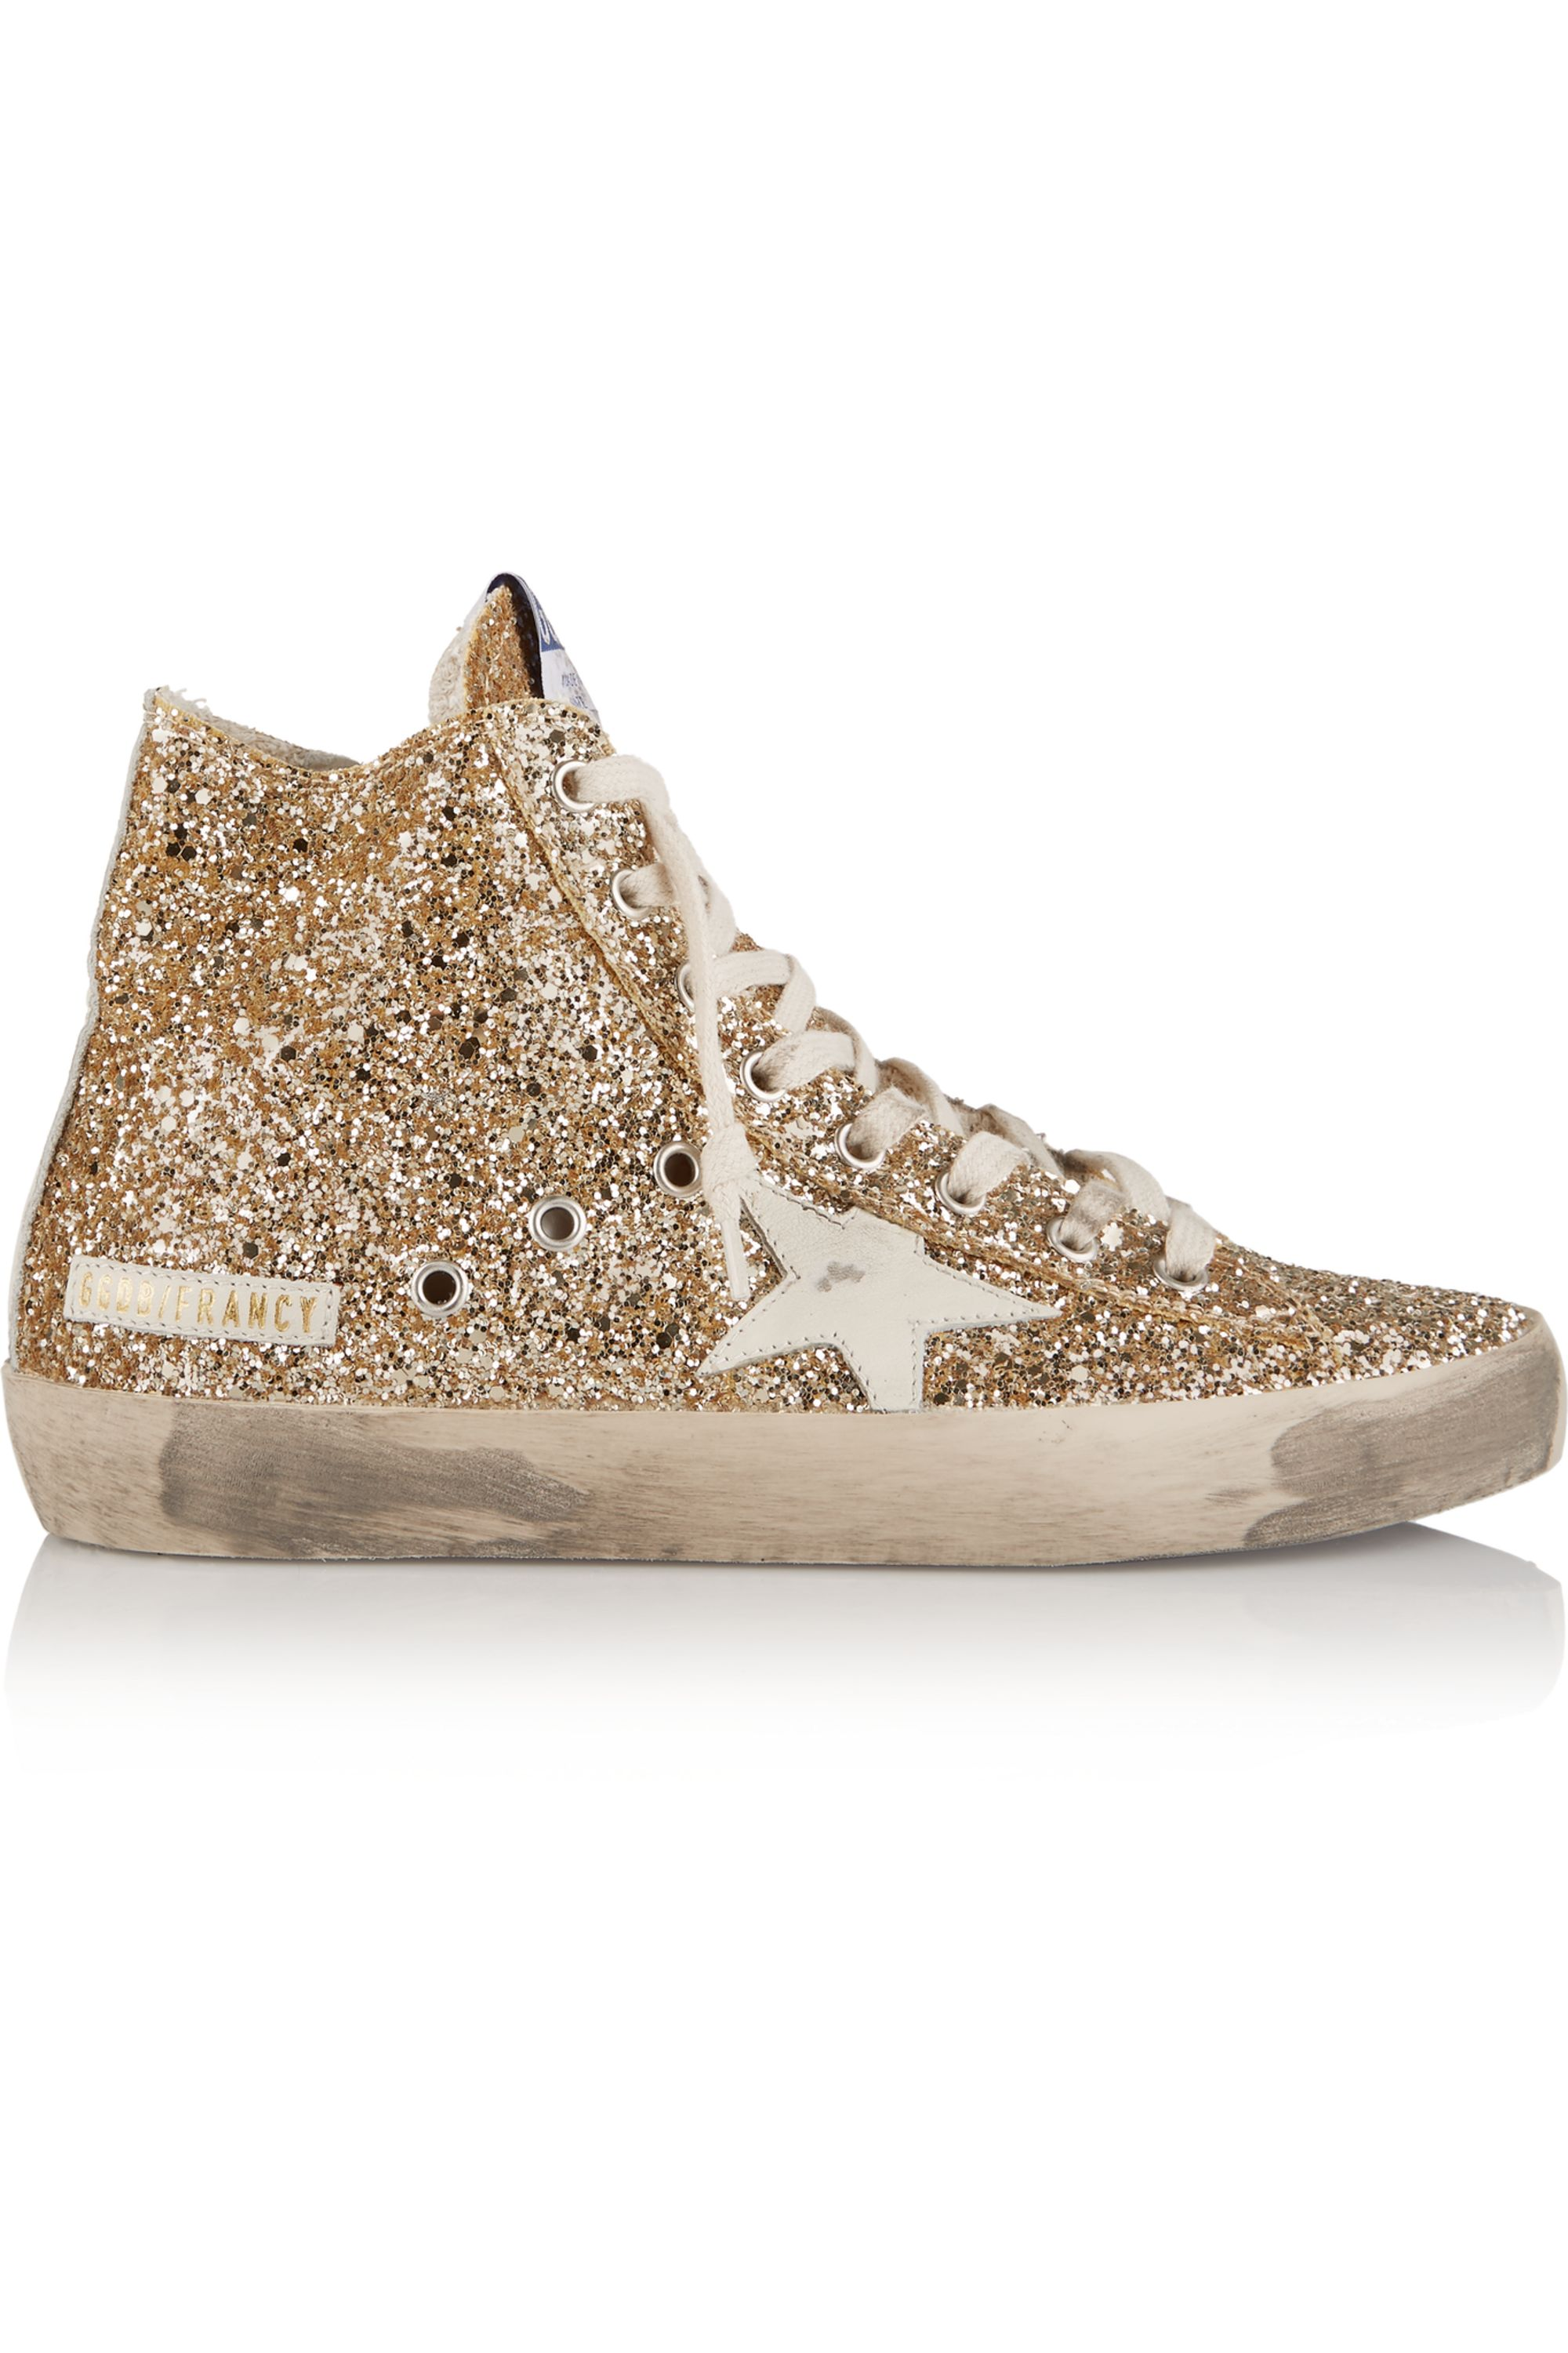 Golden Goose Francy glittered leather high-top sneakers